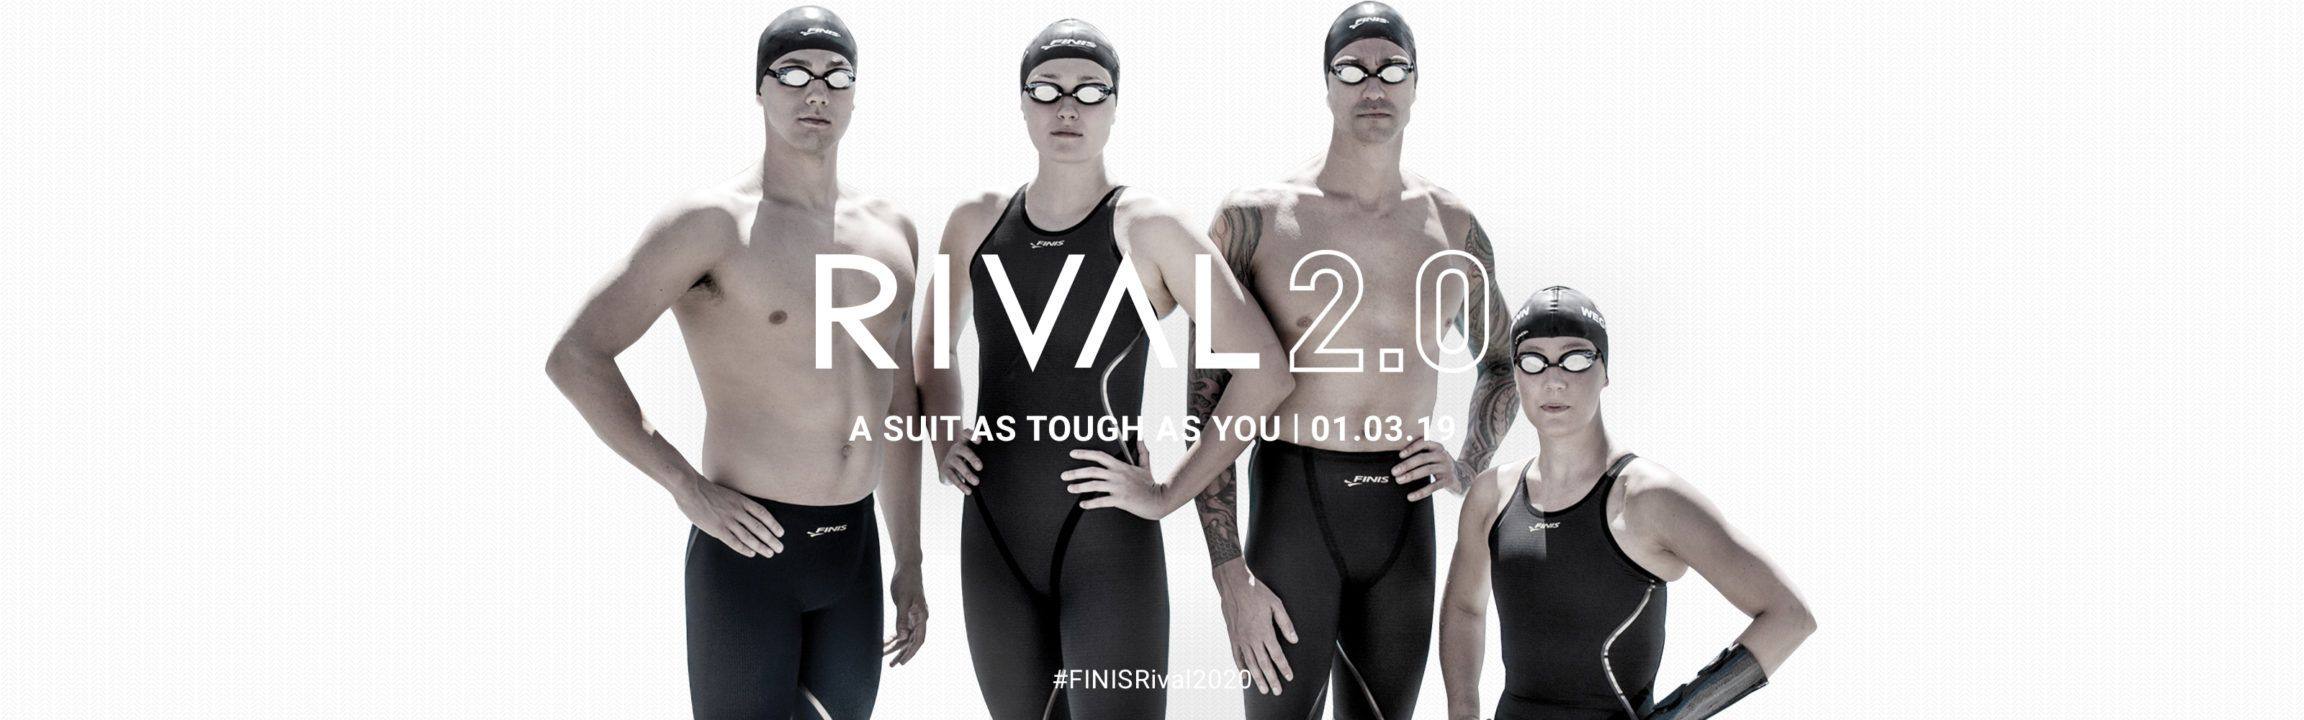 FINIS Announces Global Launch of New Tech Suit, Rival 2.0